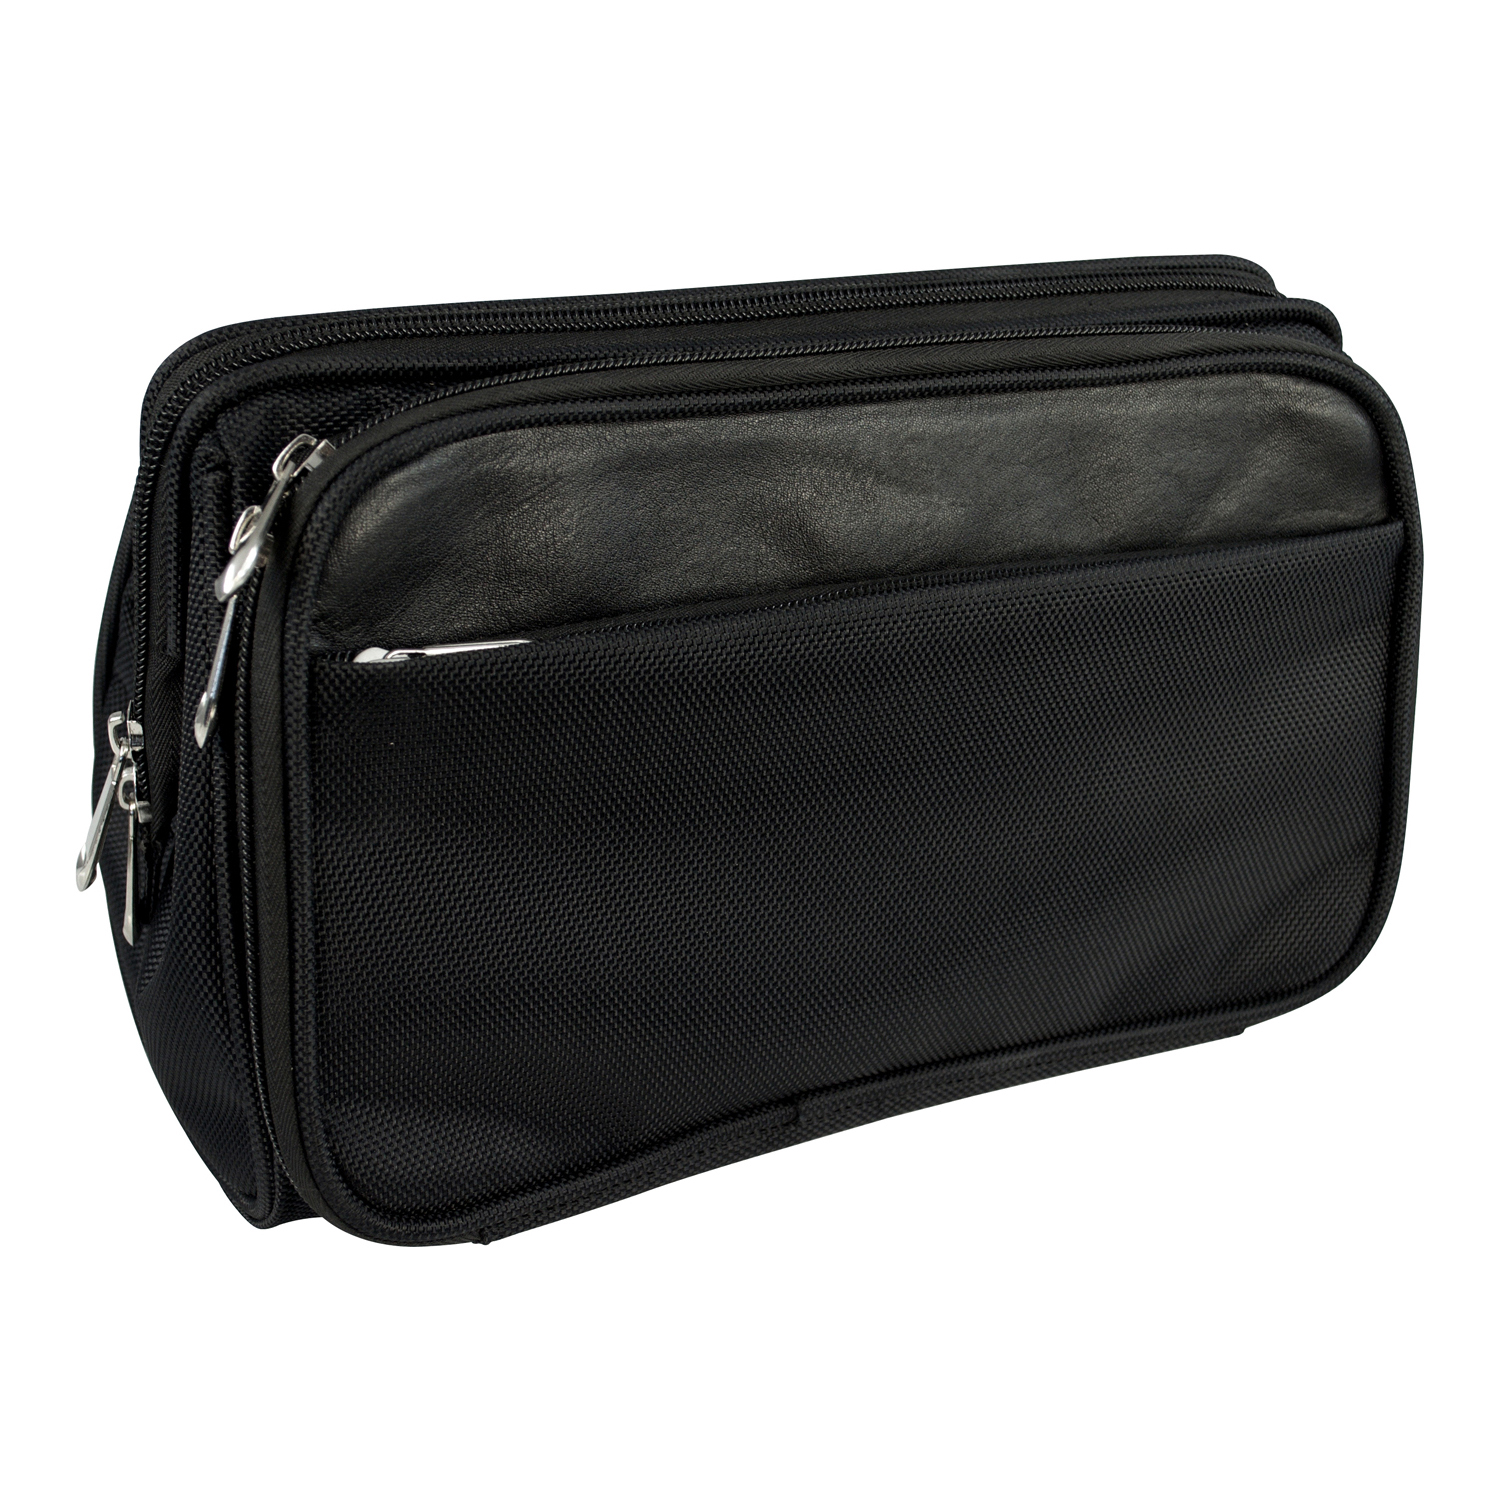 Promotional Product Morro Executive Toilet Bag